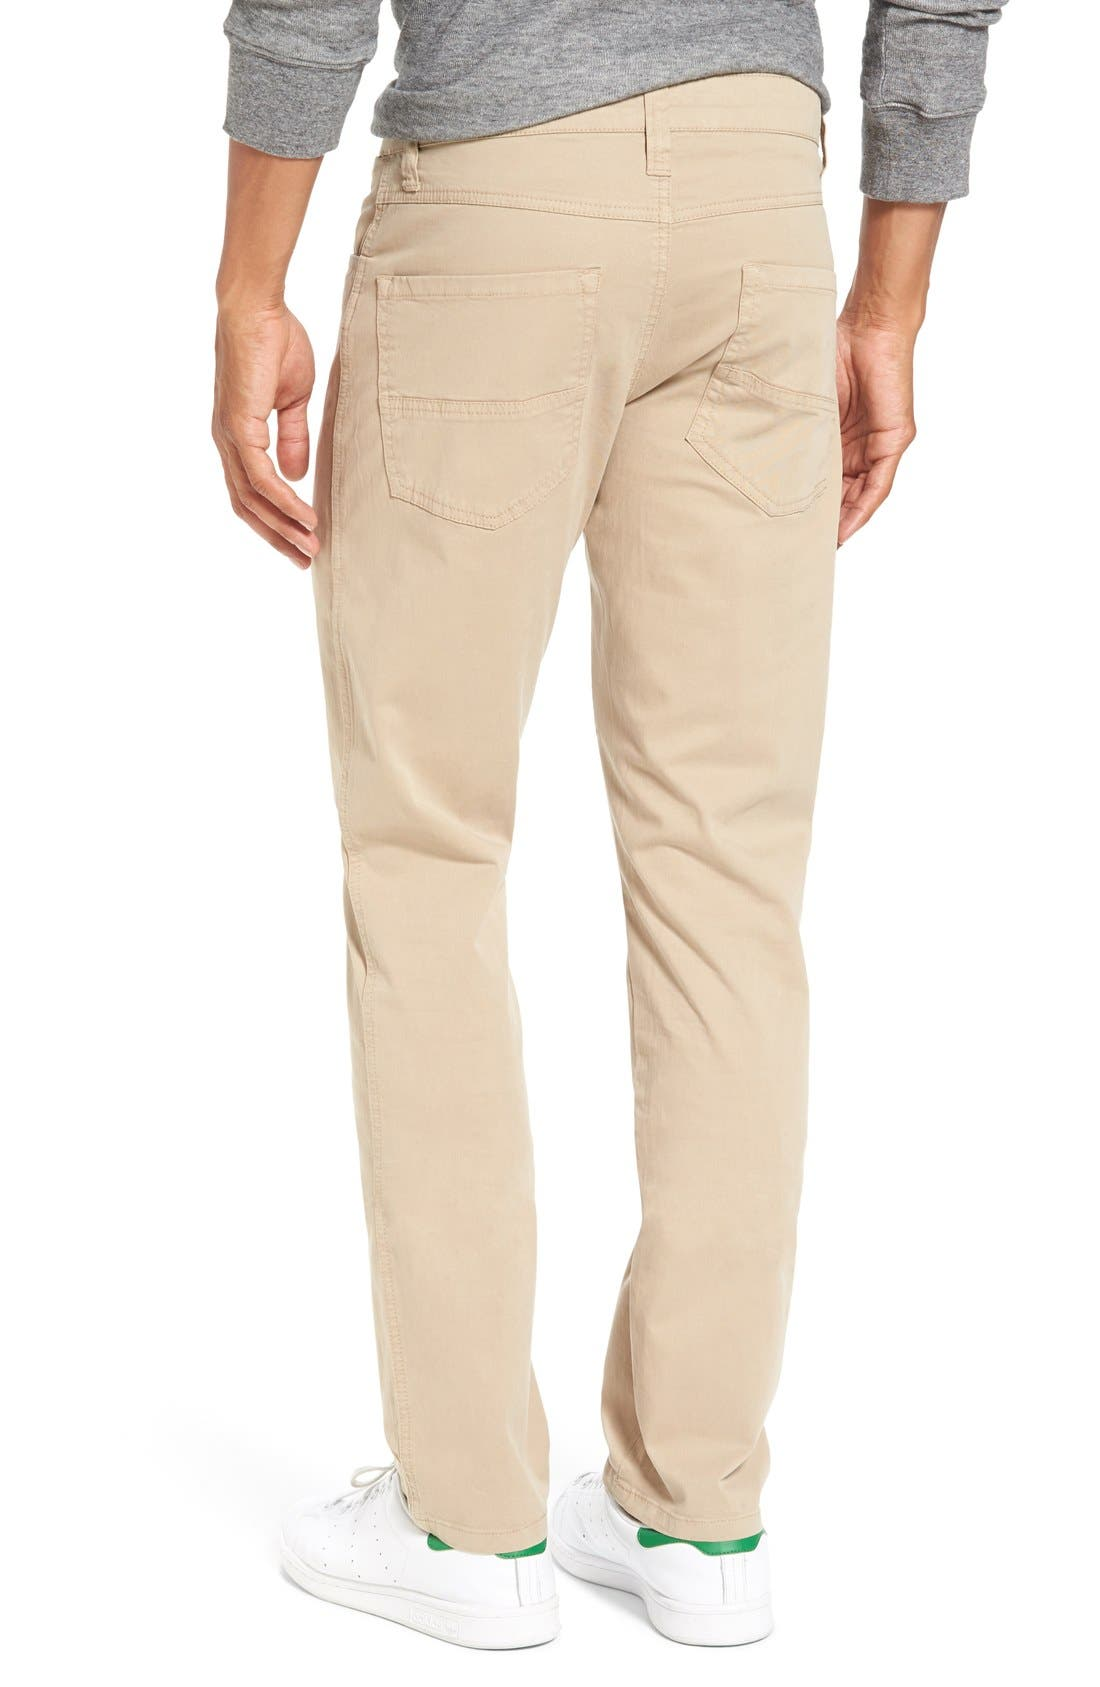 'Sunny' Slim Fit Stretch Twill Pants,                             Alternate thumbnail 2, color,                             Khaki